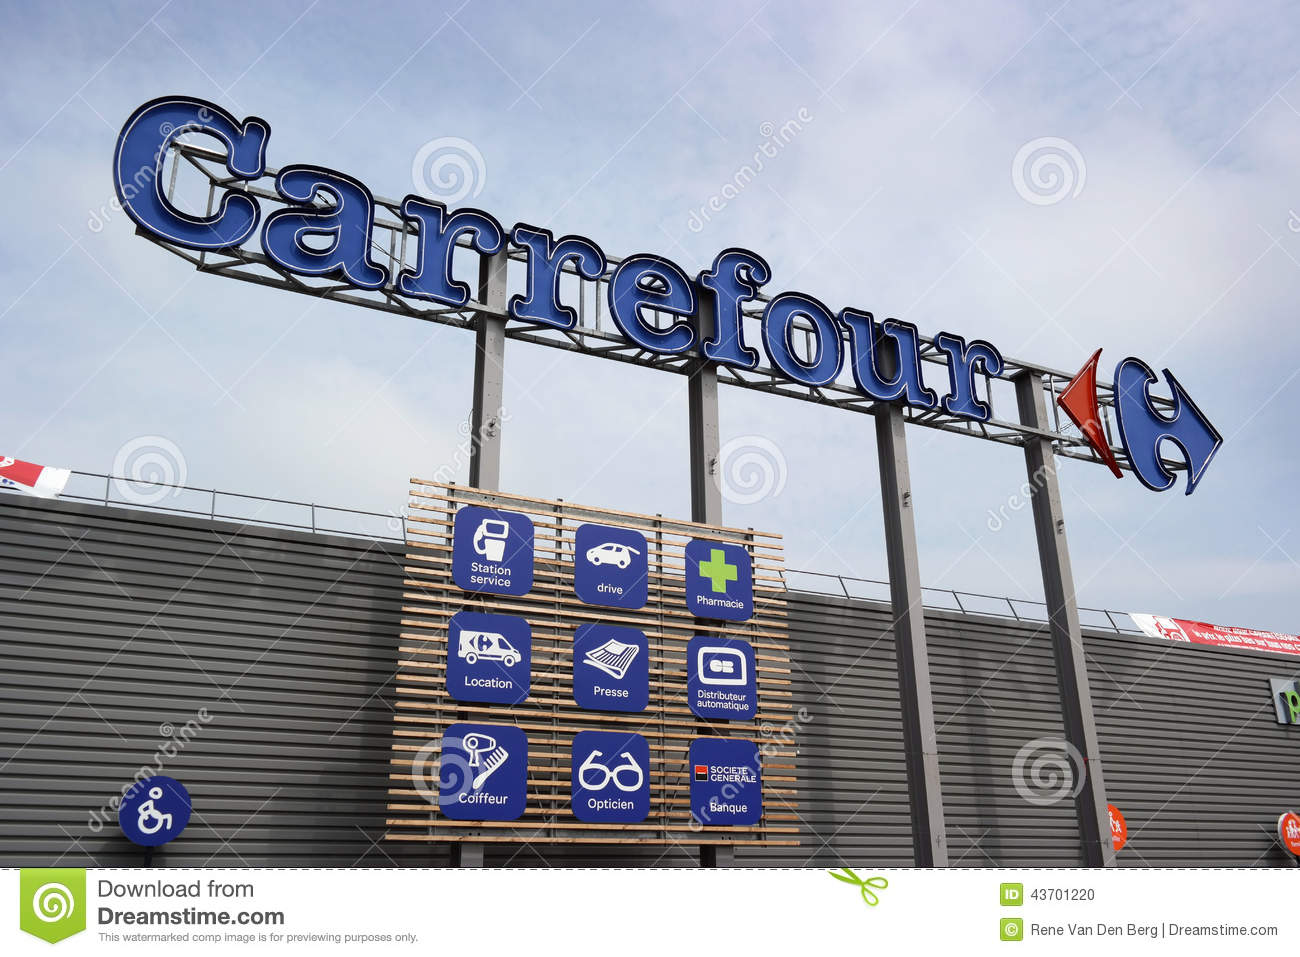 carrefour is one of the largest Carrefour - [french]  delta galilis the nation's largest manufacturer and marketer of textiles and is one of the largest private-label underwear manufacturers in.